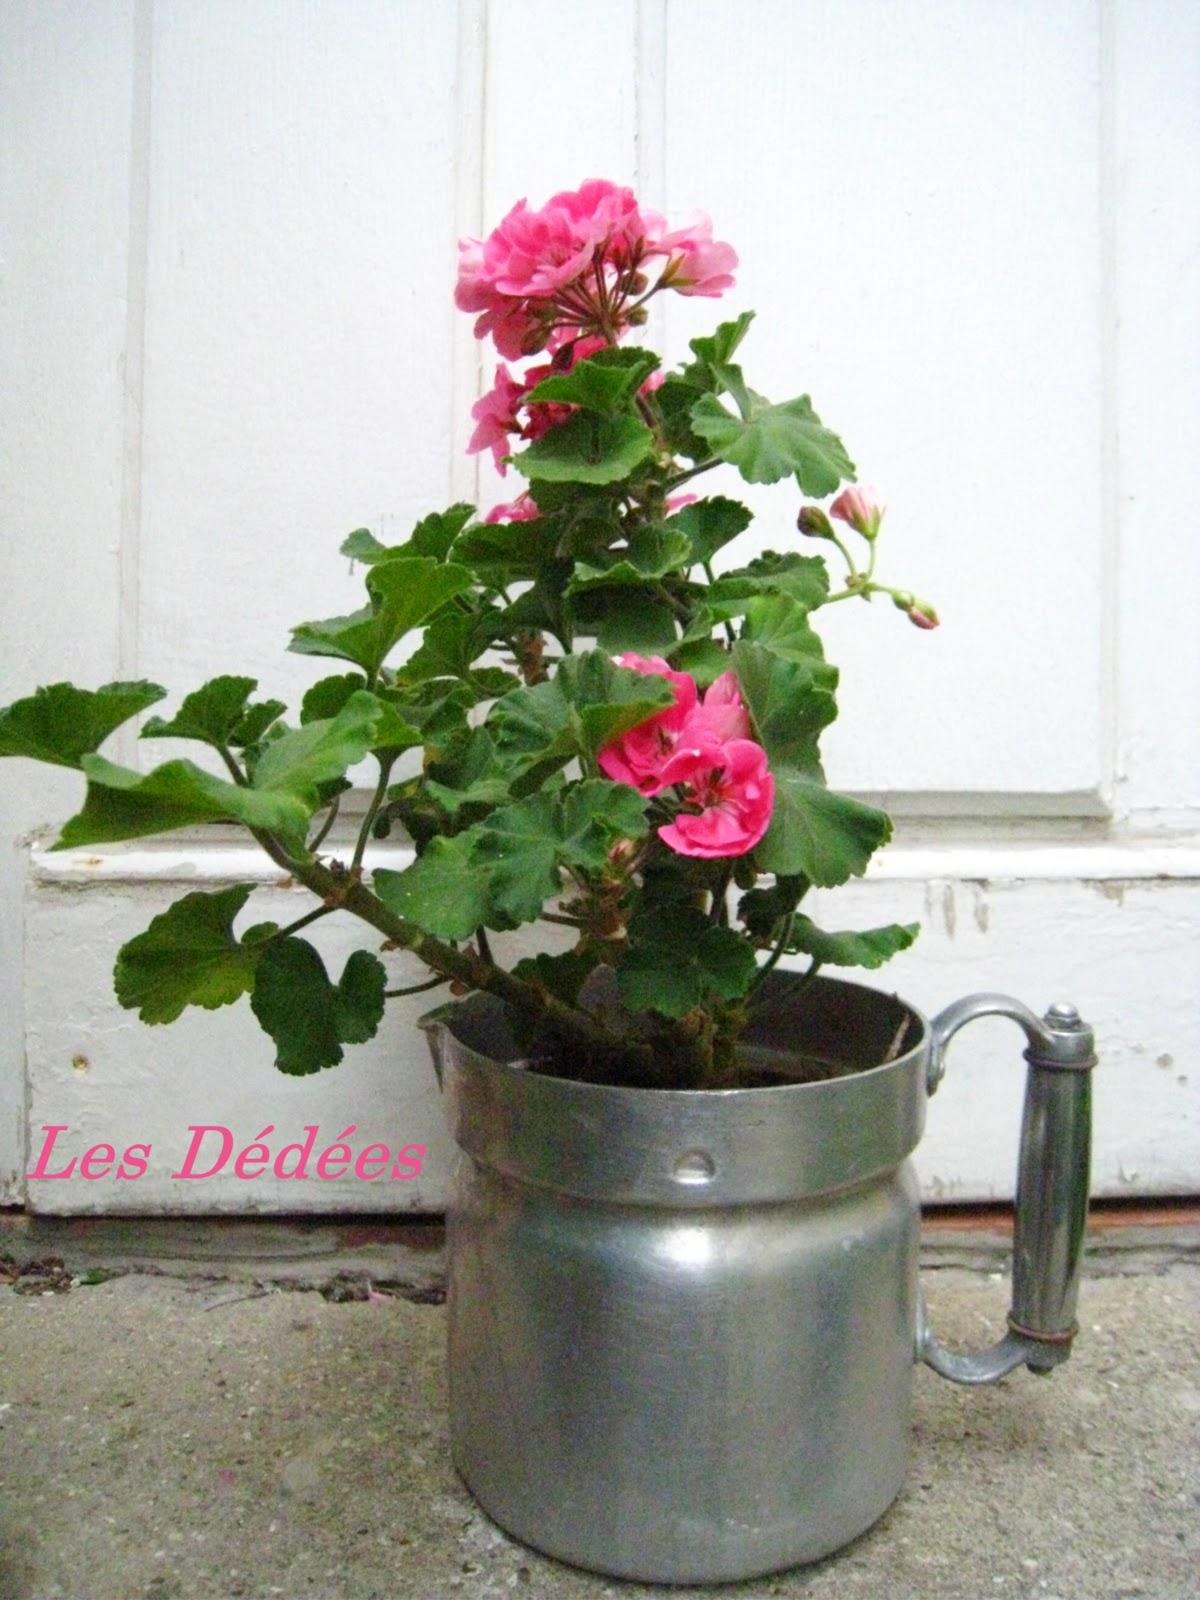 Les dedees vintage recup creations deco les pots a for Pots cuisine decoration